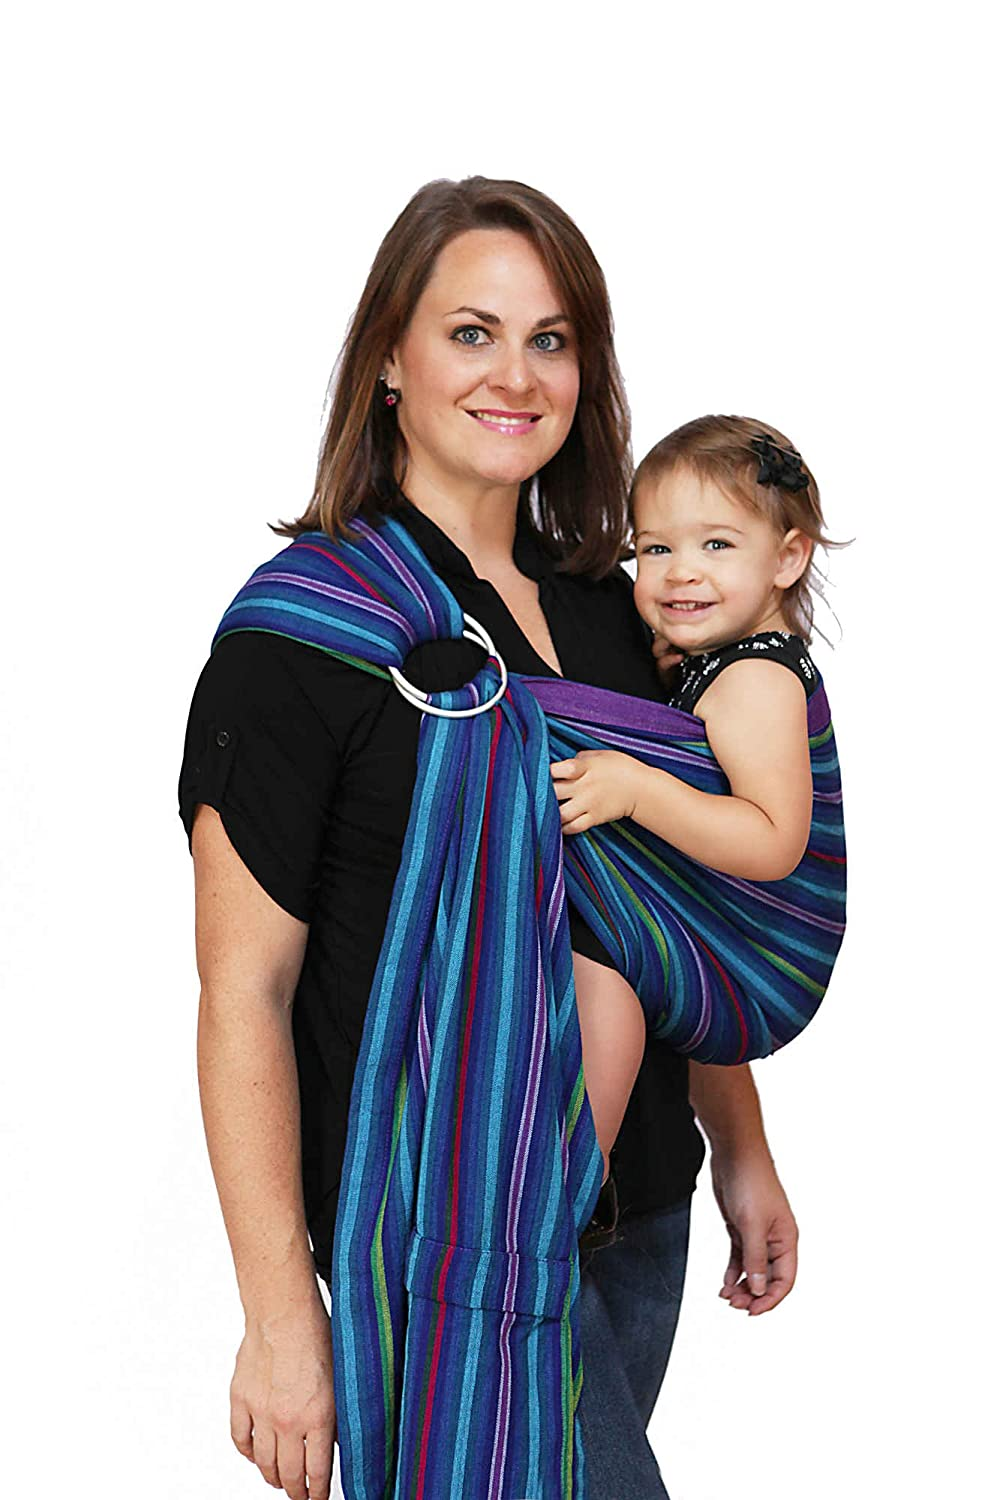 Maya Wrap Lightly Padded Ring Sling | Ergonomic Baby Carrier | Integrated Pocket | Lightweight, Breathable Cotton | Berries (Large)